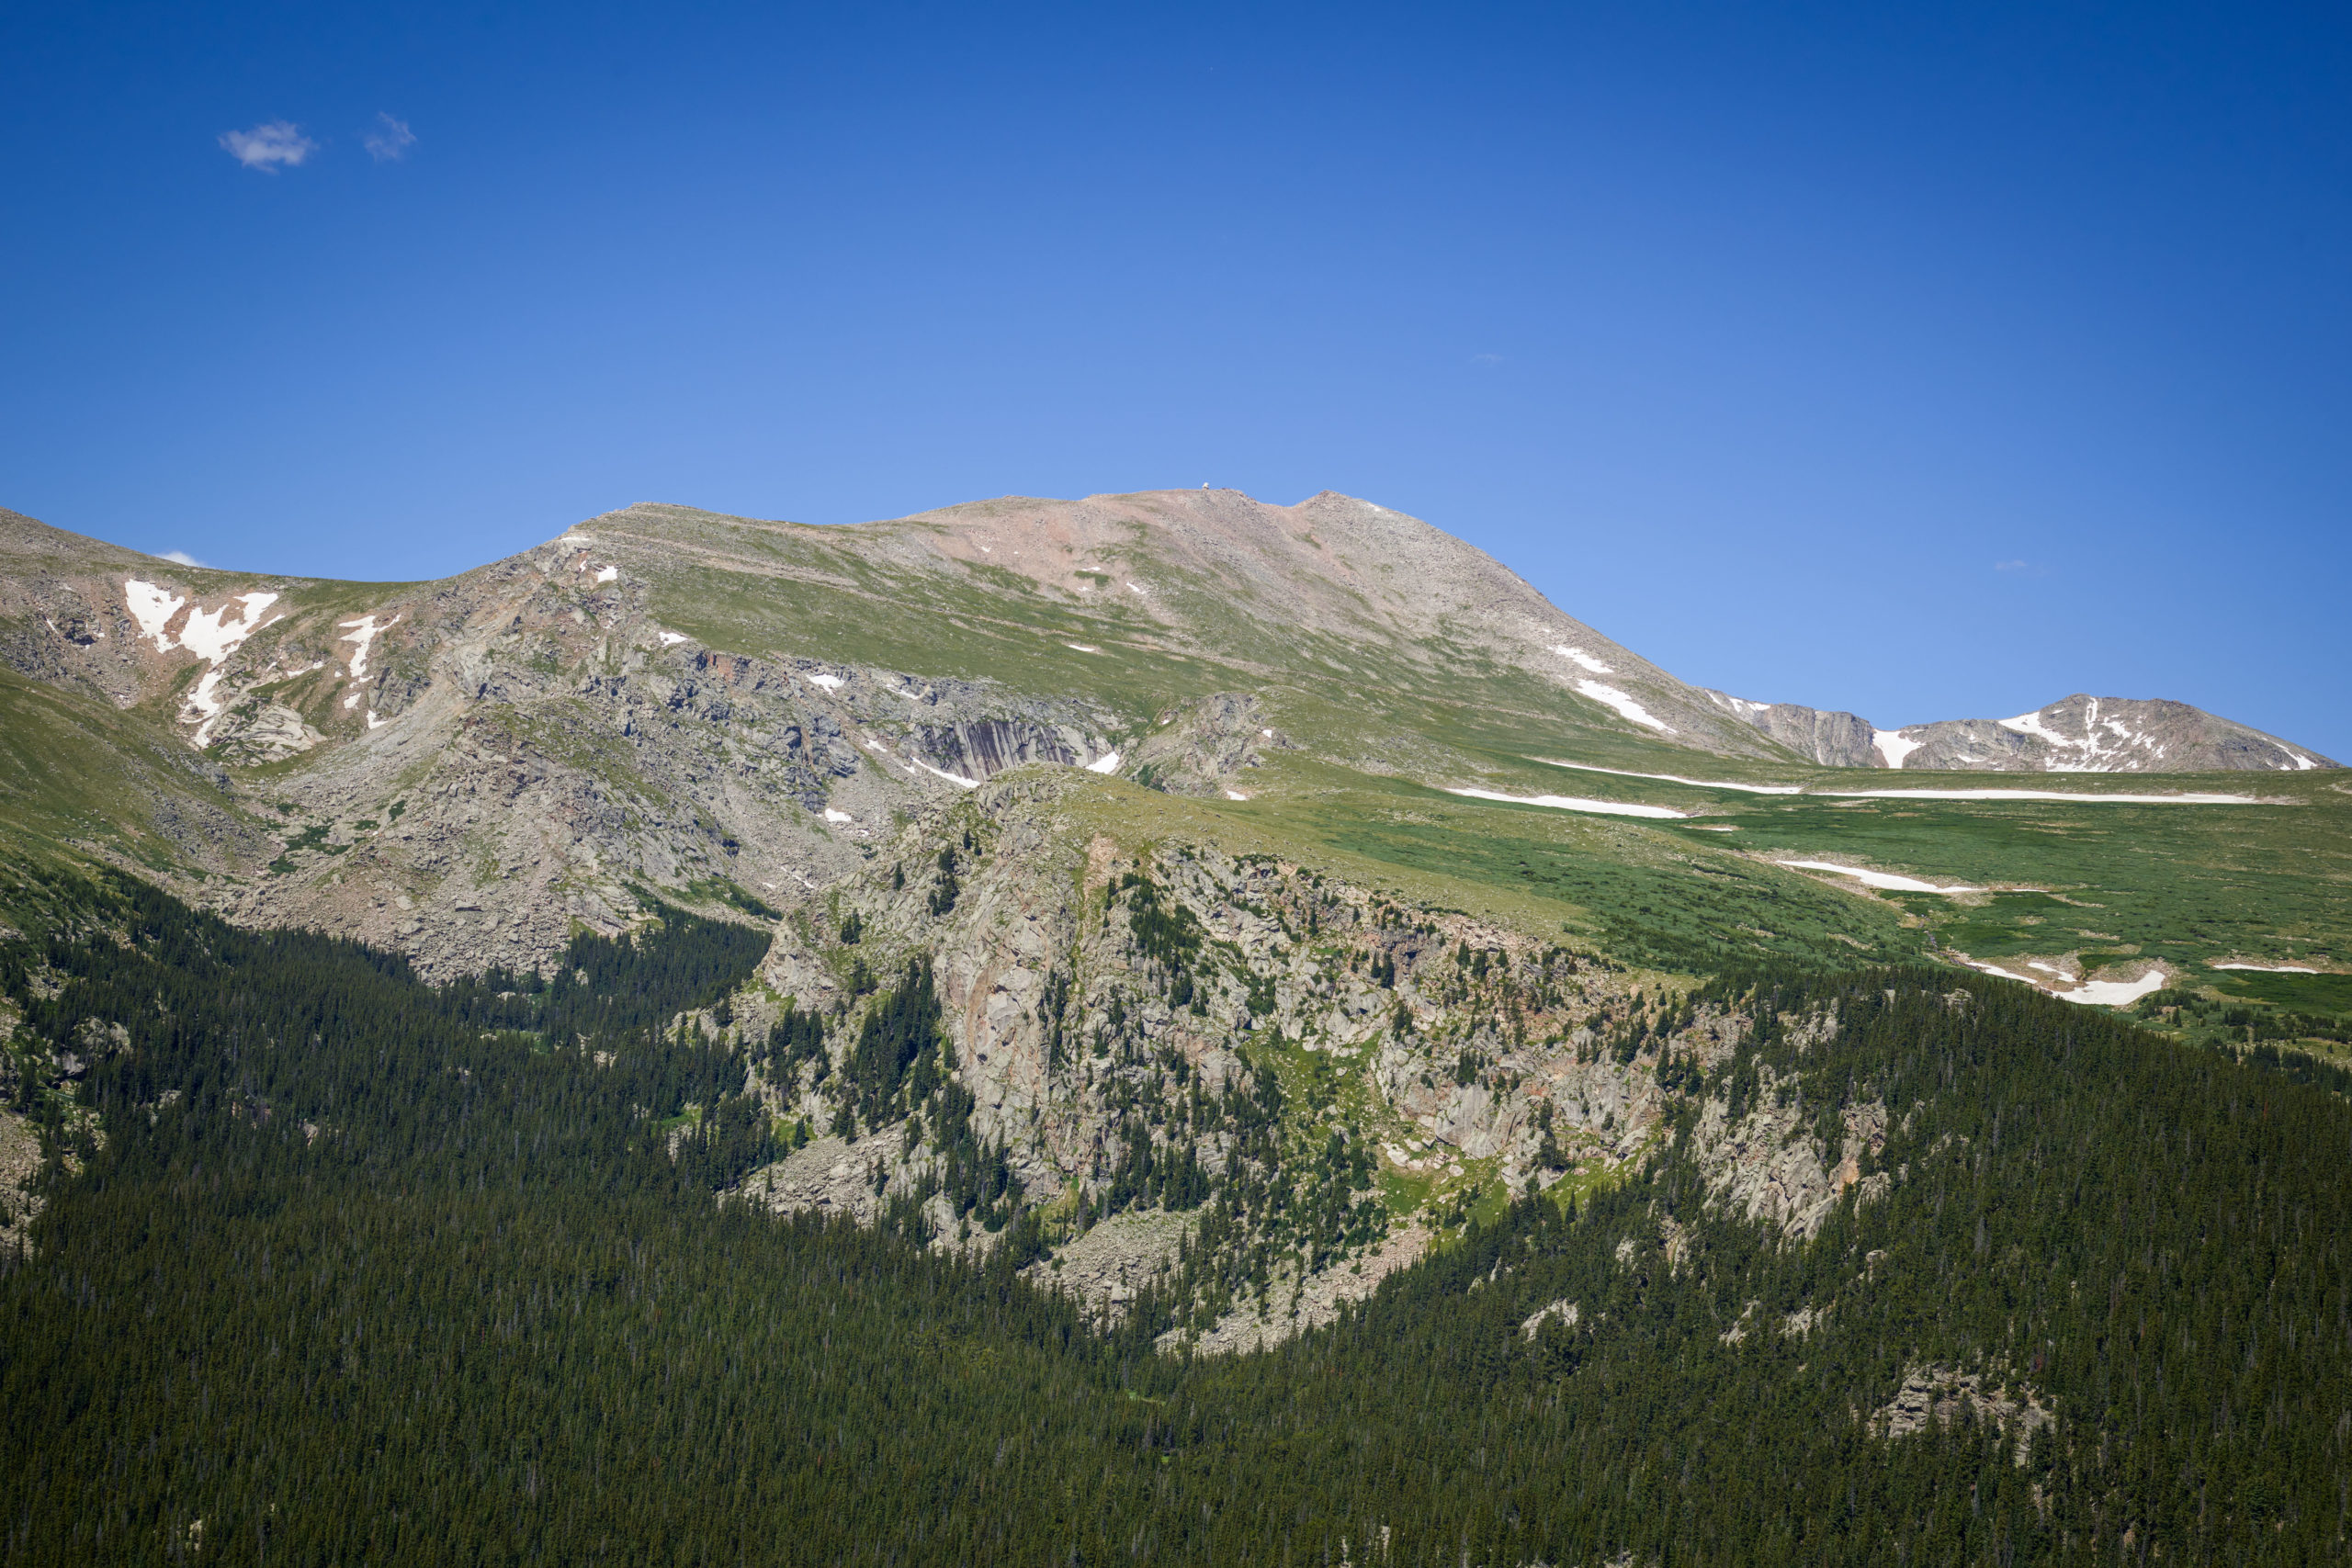 Aerial view of Mount Evans, at 14,241 feet the highest peak in the Chicago Peaks of the Front Range of the Rocky Mountains, in Clear Creek County, Colo., July 10, 2016.